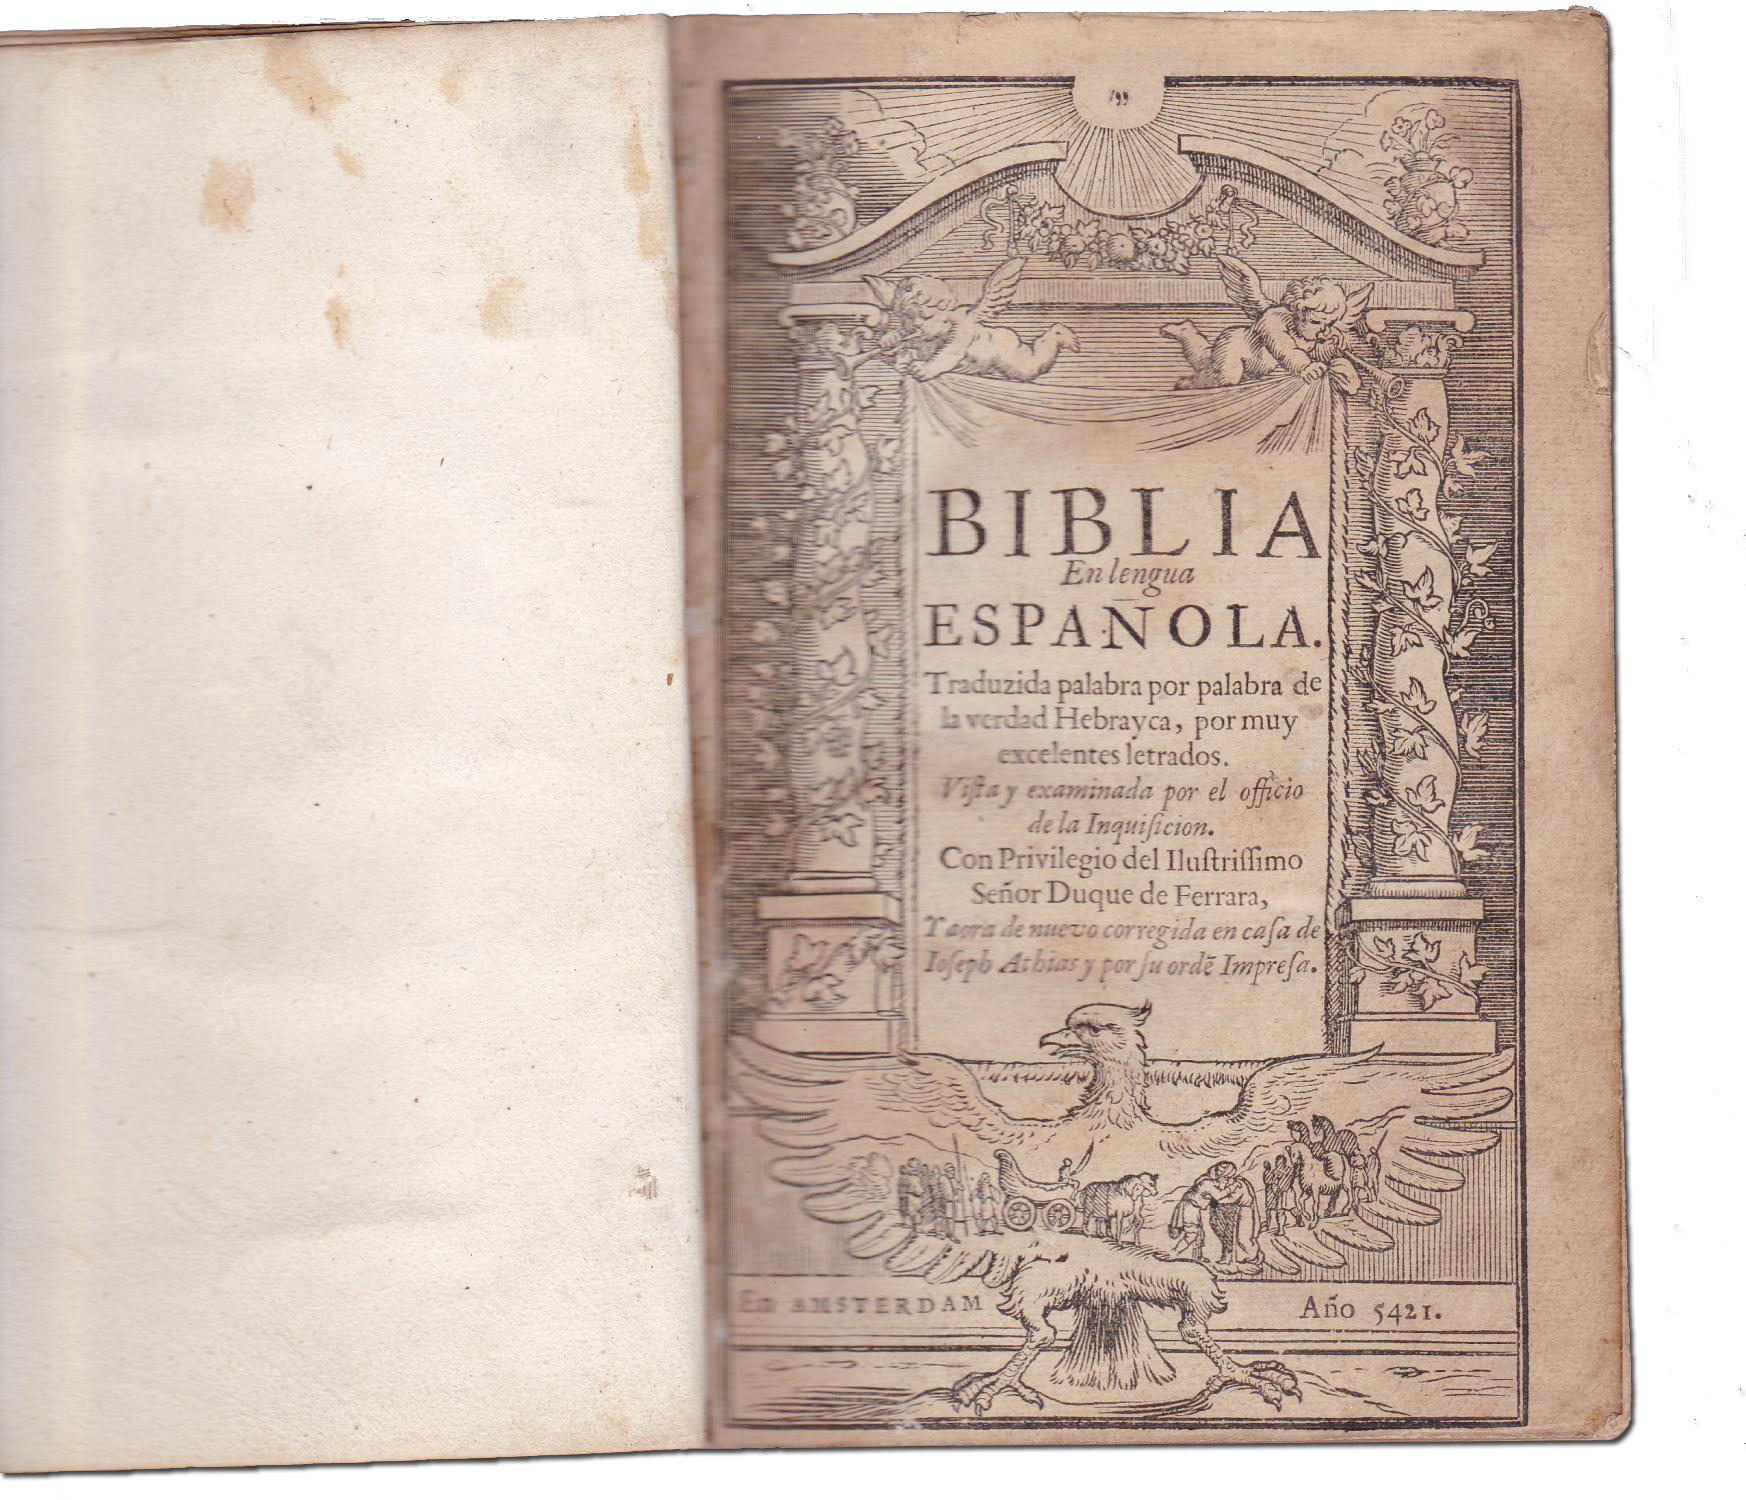 Iberlibros Paginas De Biblias Antiguas Miifotos